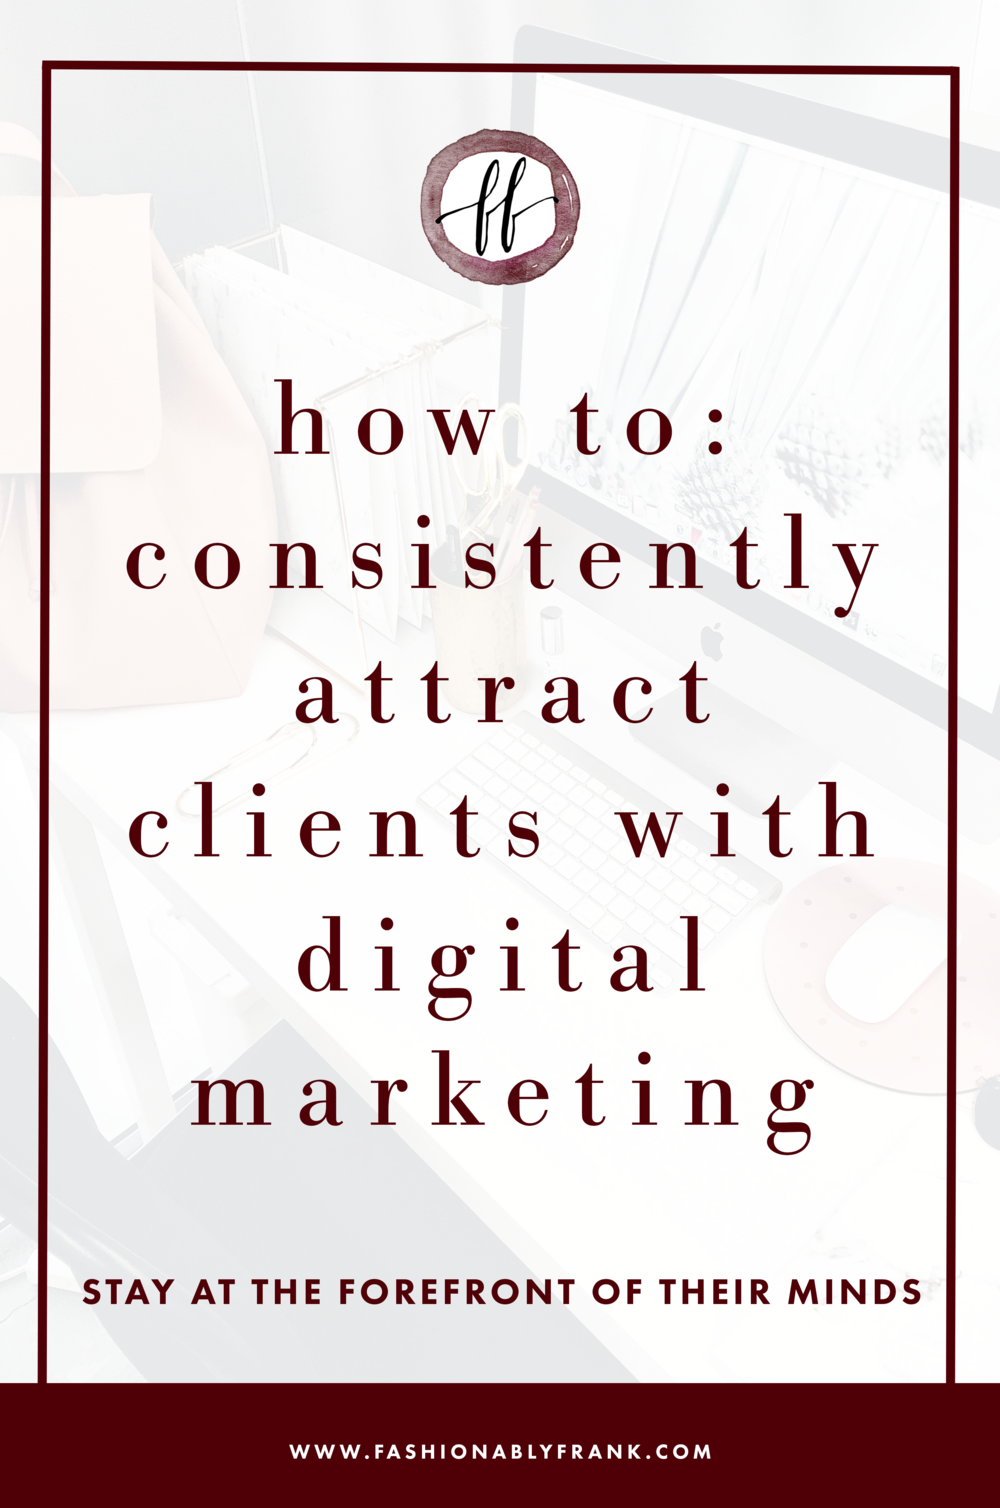 How to Consistently Attract Clients